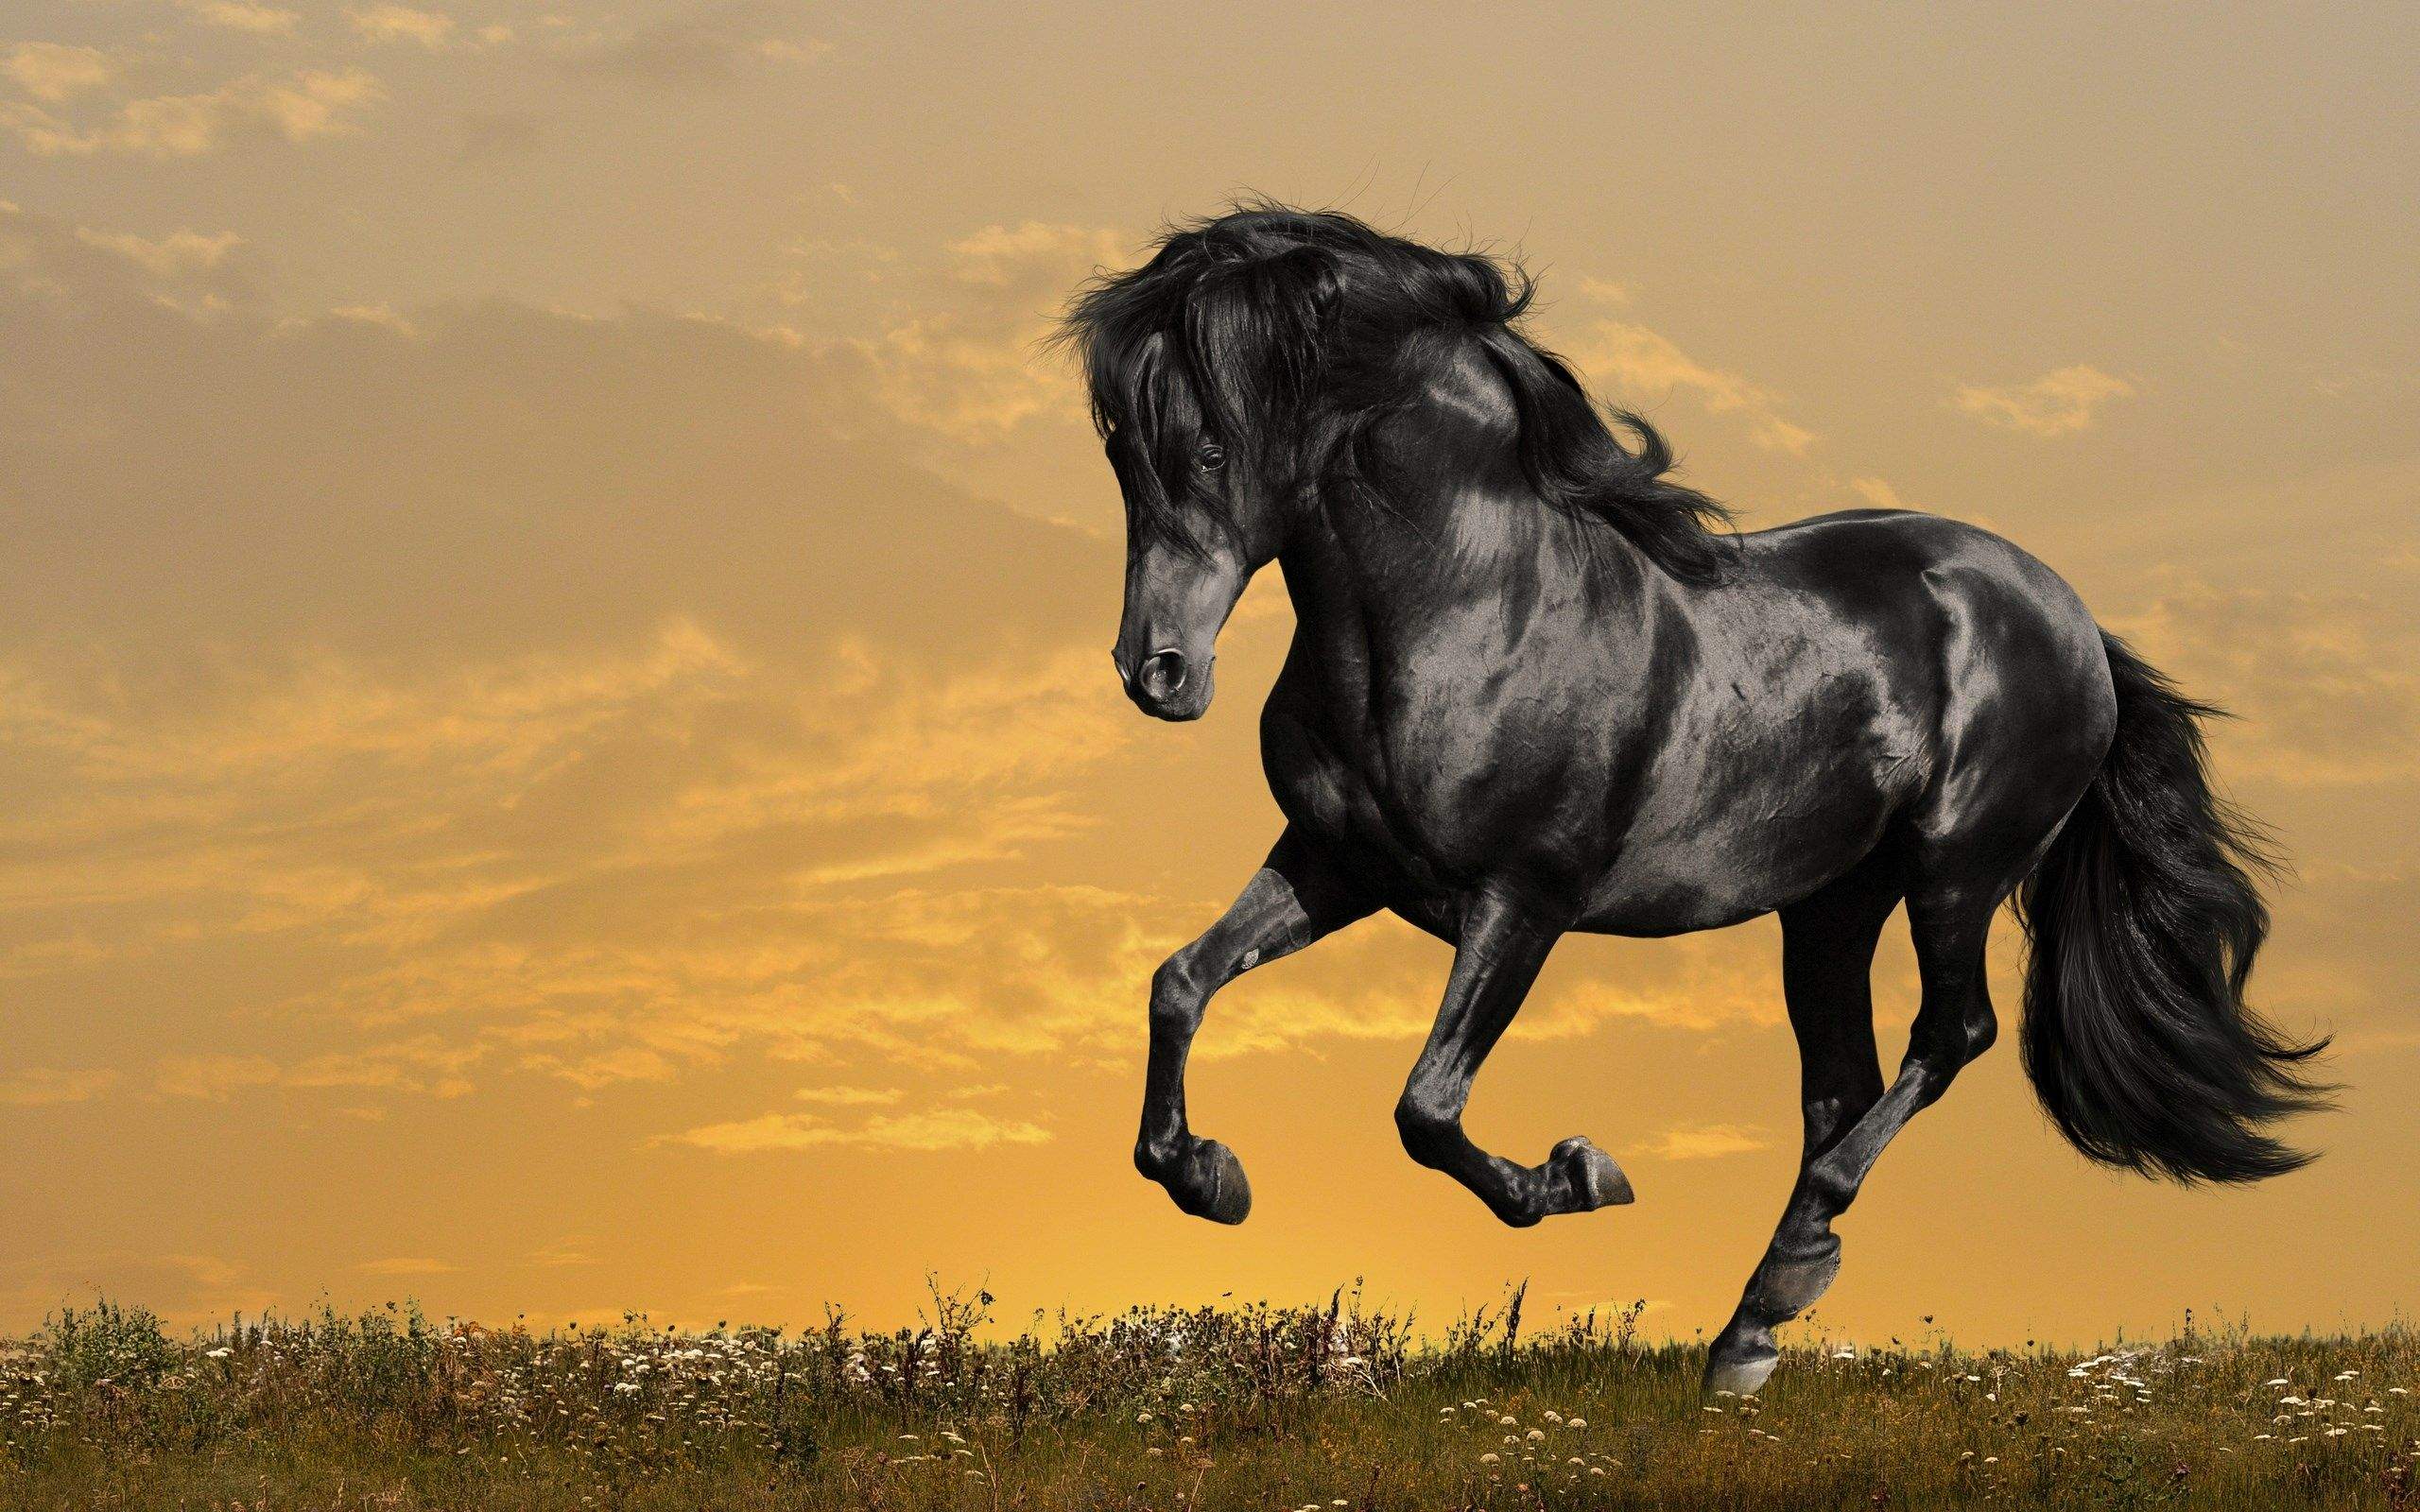 Amazing Wallpaper Horse Vintage - f7ea64fb978fc5e2fcd85afe765cd550  Trends_30975.jpg